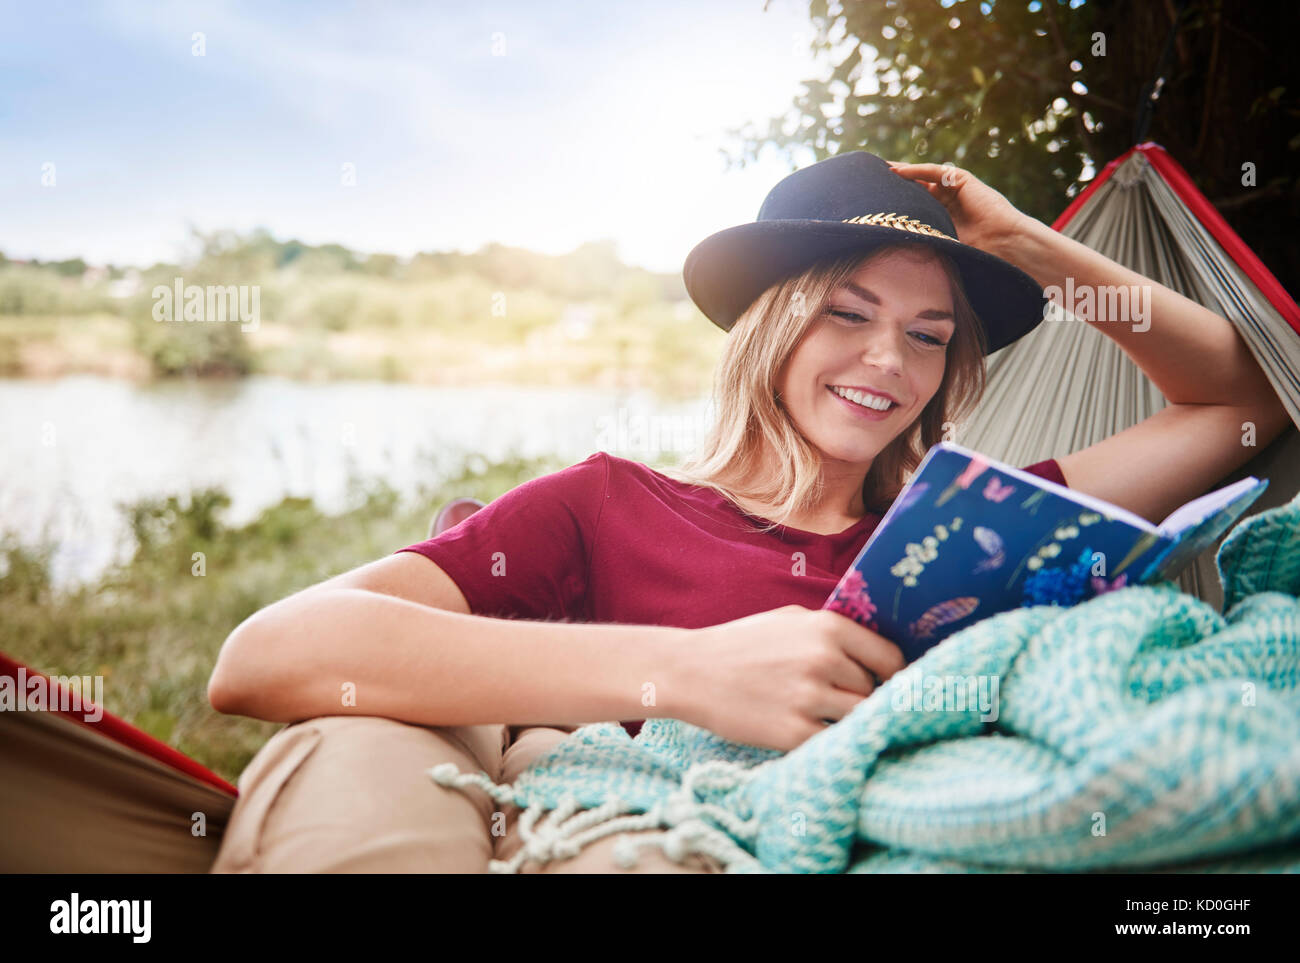 Woman relaxing in hammock reading book, Cracovie, Pologne, europe, malopolskie Photo Stock